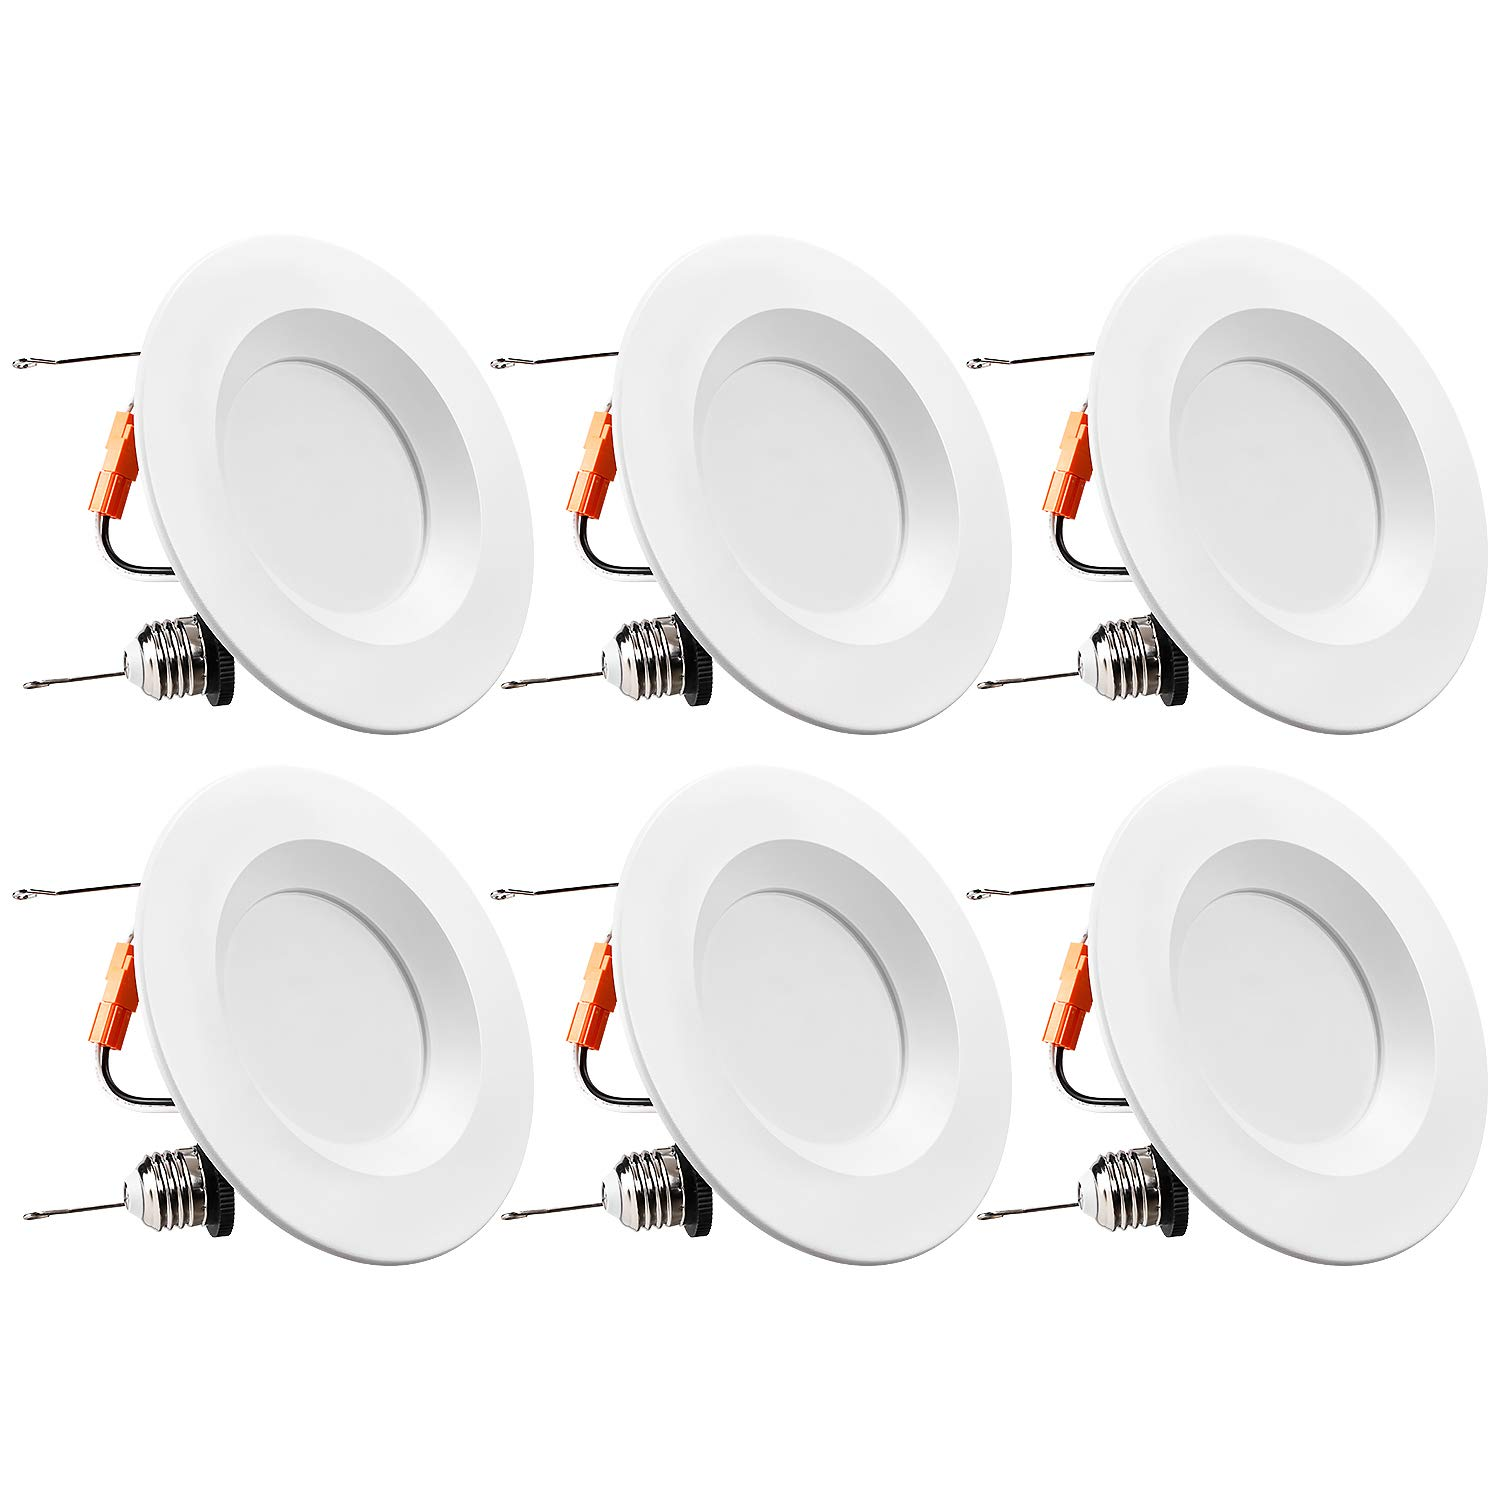 TORCHSTAR 5/6 Inch Dimmable LED Retrofit Recessed Downlight, 15W (120W Equivalent), Energy Star & UL-Listed, CRI90+, 1100lm, 5000K Daylight, 5 Years Warranty, Pack of 6